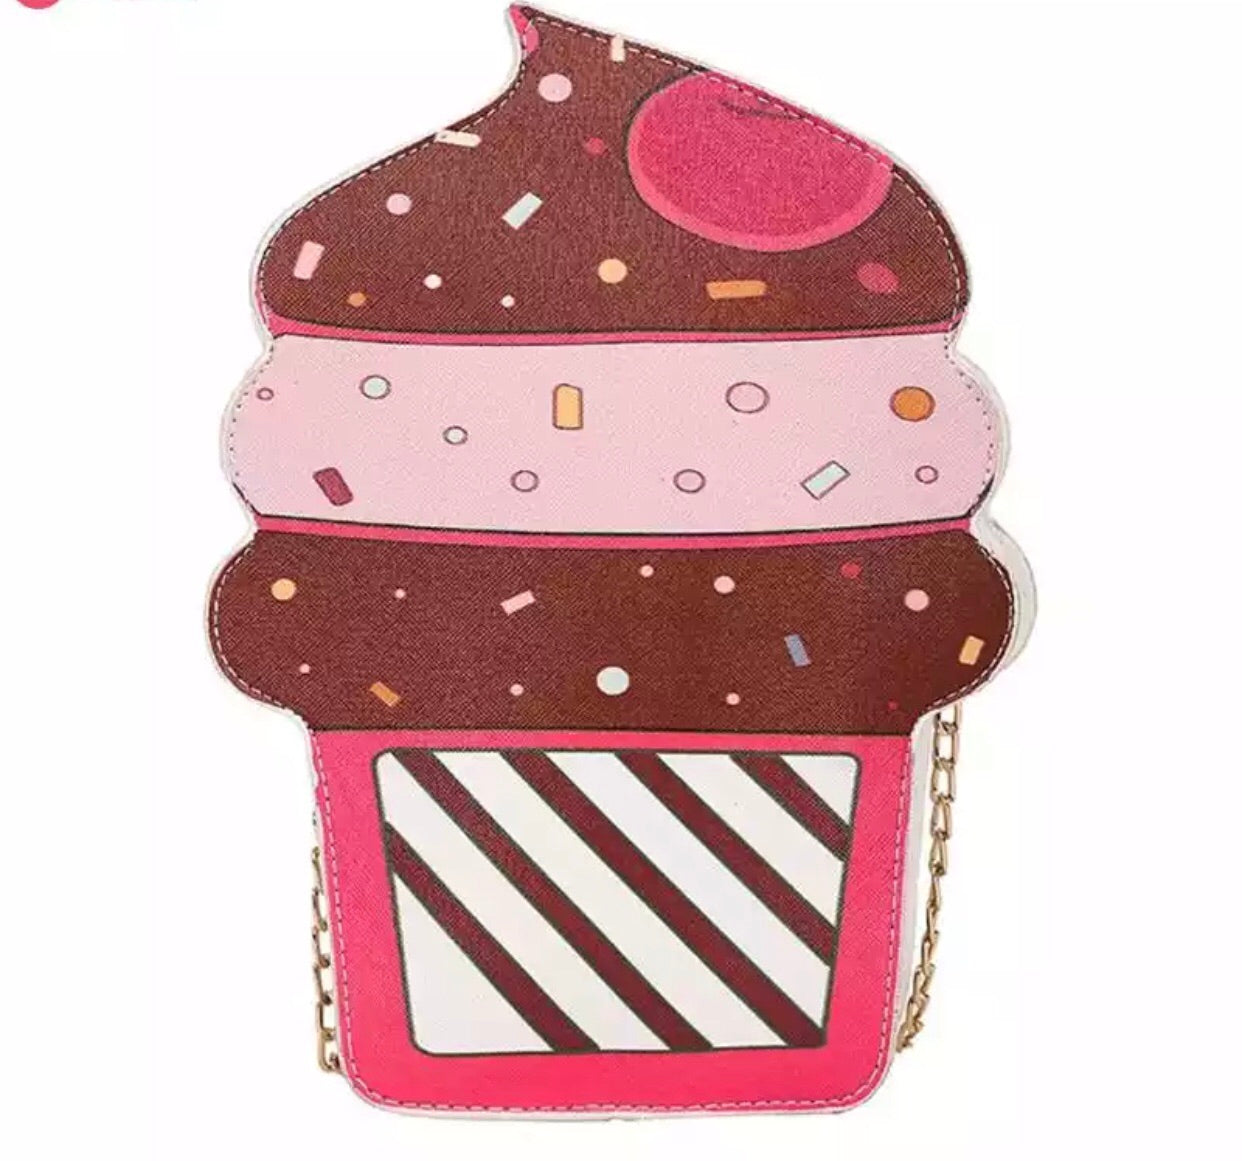 Delicious Ice cream crossbody bag purse